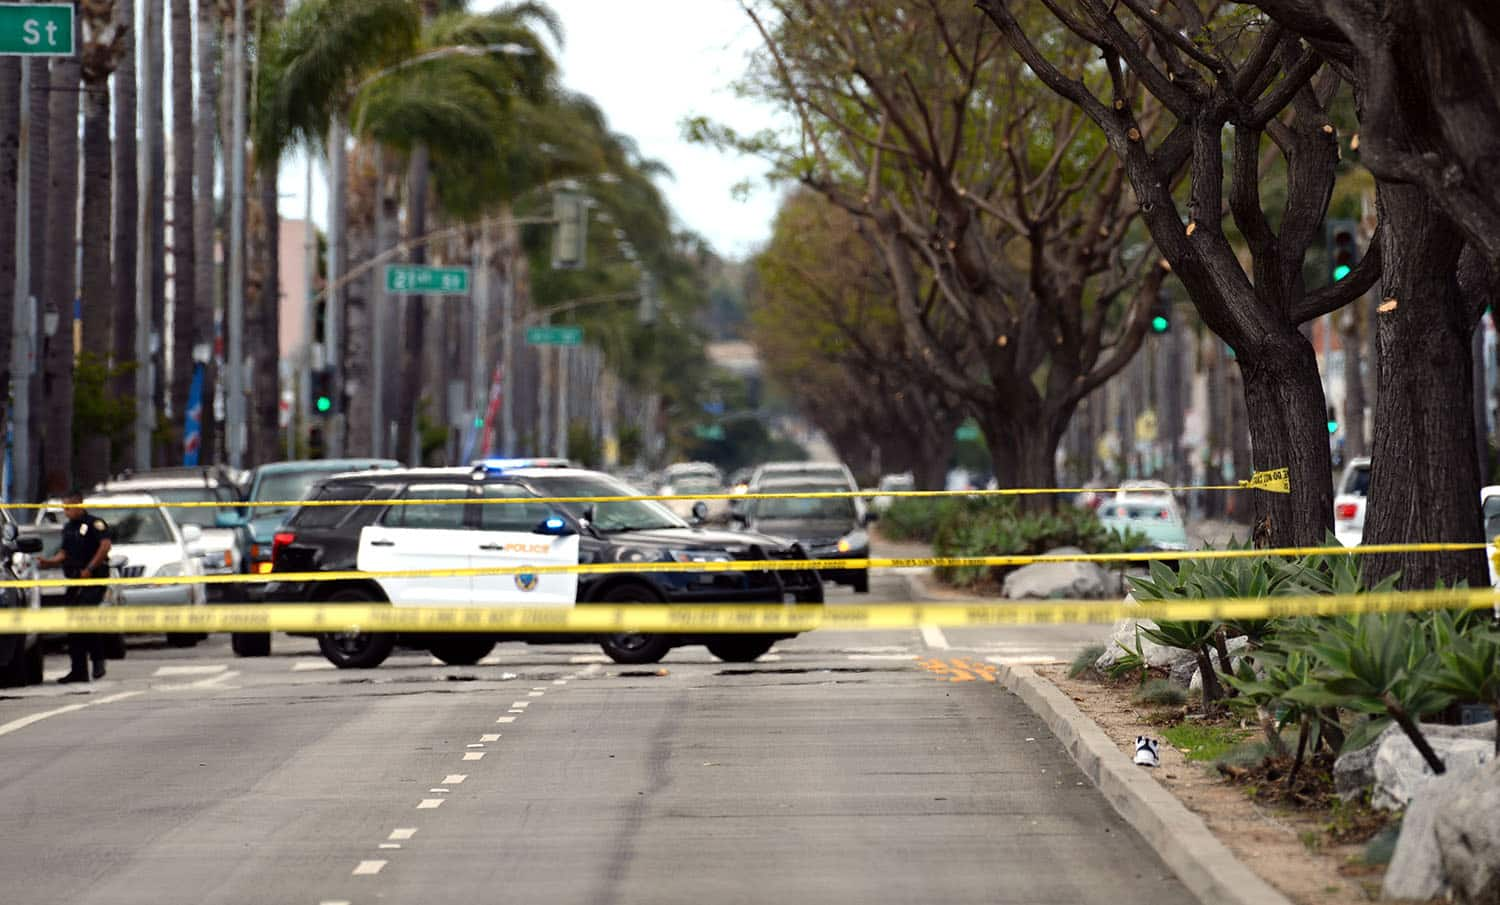 After 4 fatalities in 2019, Long Beach police crack down on Pacific